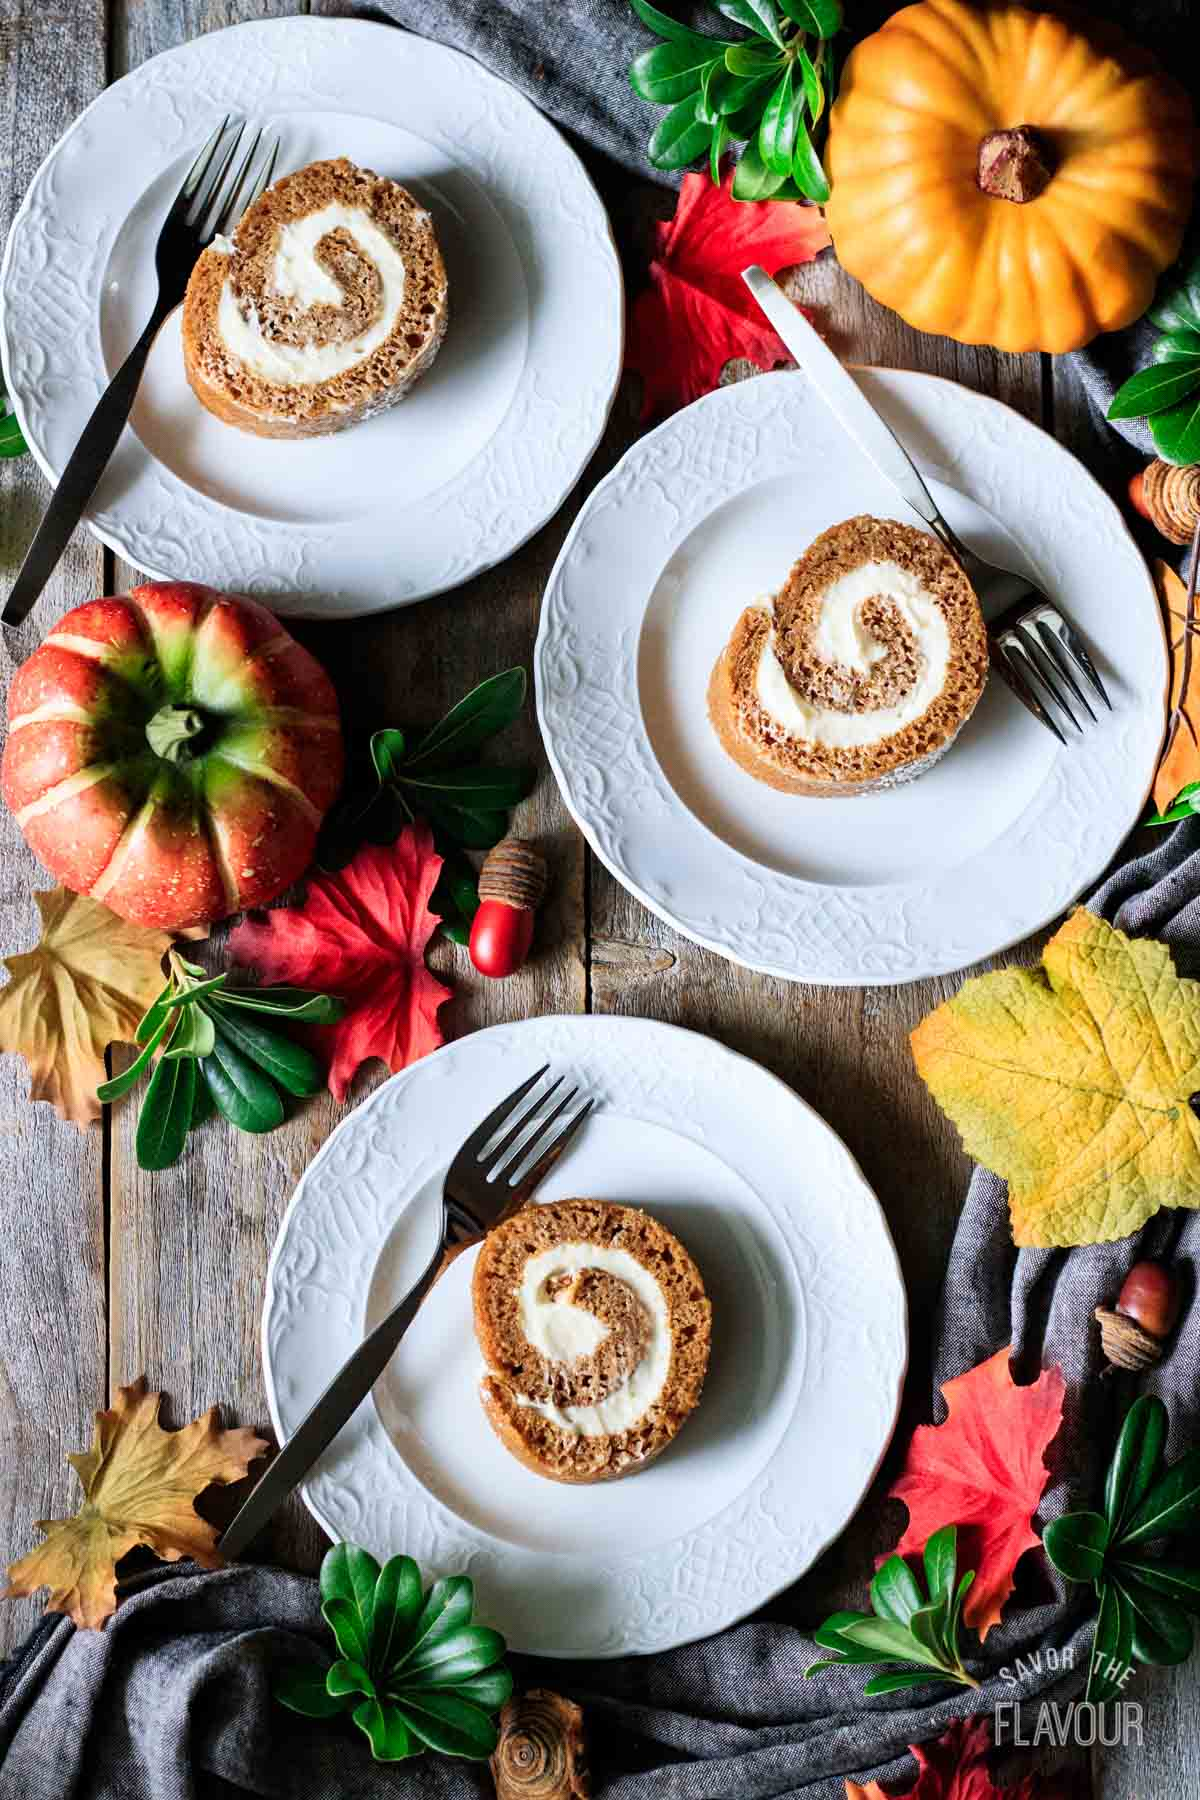 three slices of pumpkin roll on plates with forks